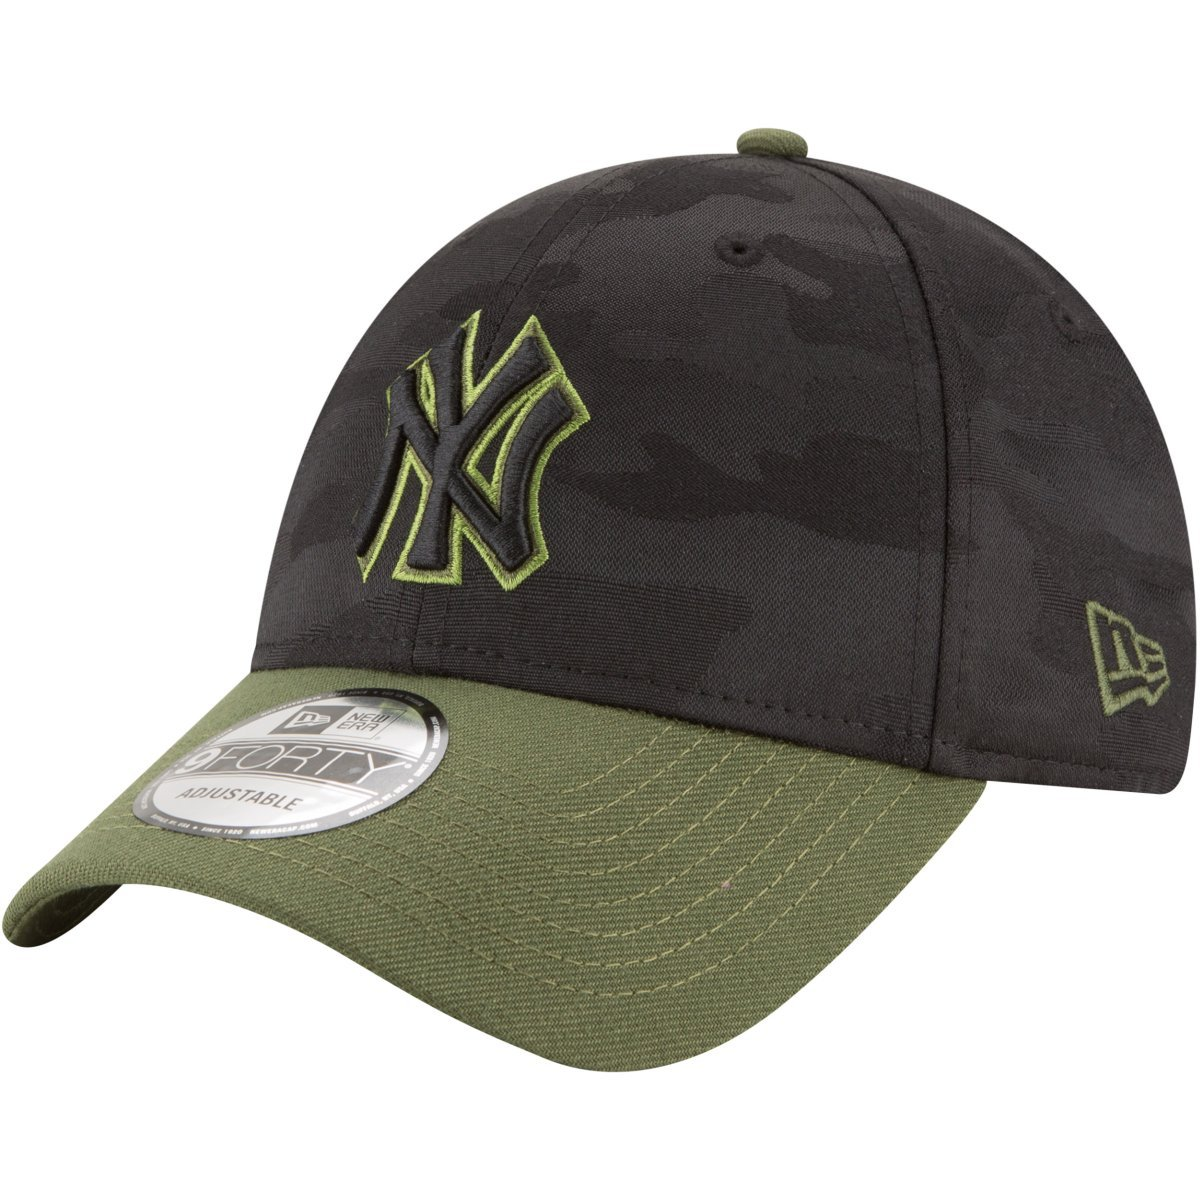 New Era New York Yankees 2018 Memorial Day 9FORTY Adjustable Hat at Amazon  Men s Clothing store  9959b1465d9a